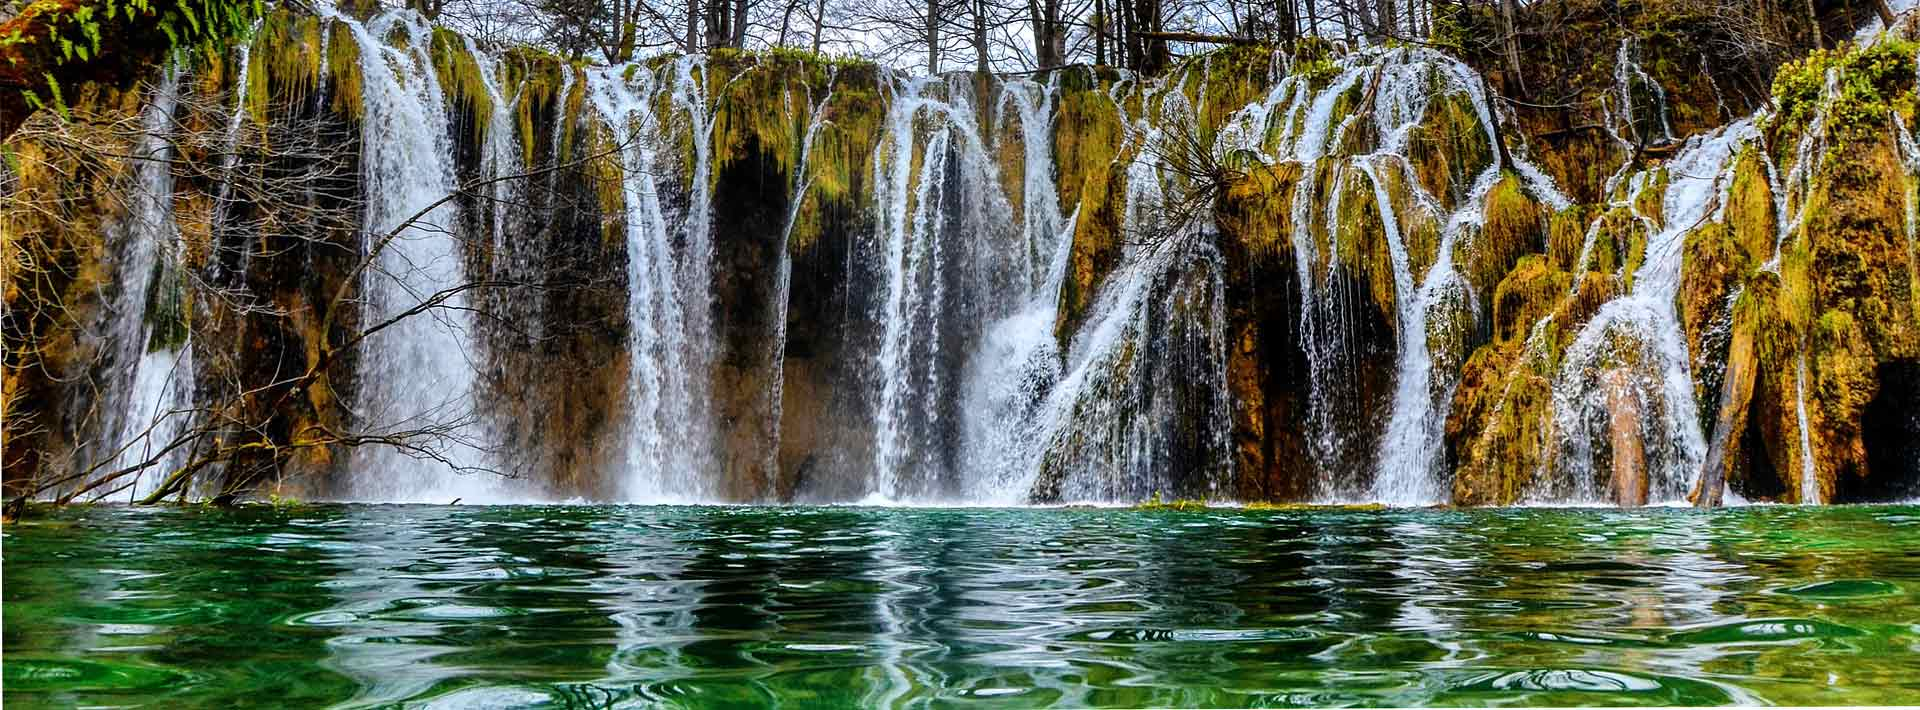 Plitvice National Park, lake with the waterfalls, autumn